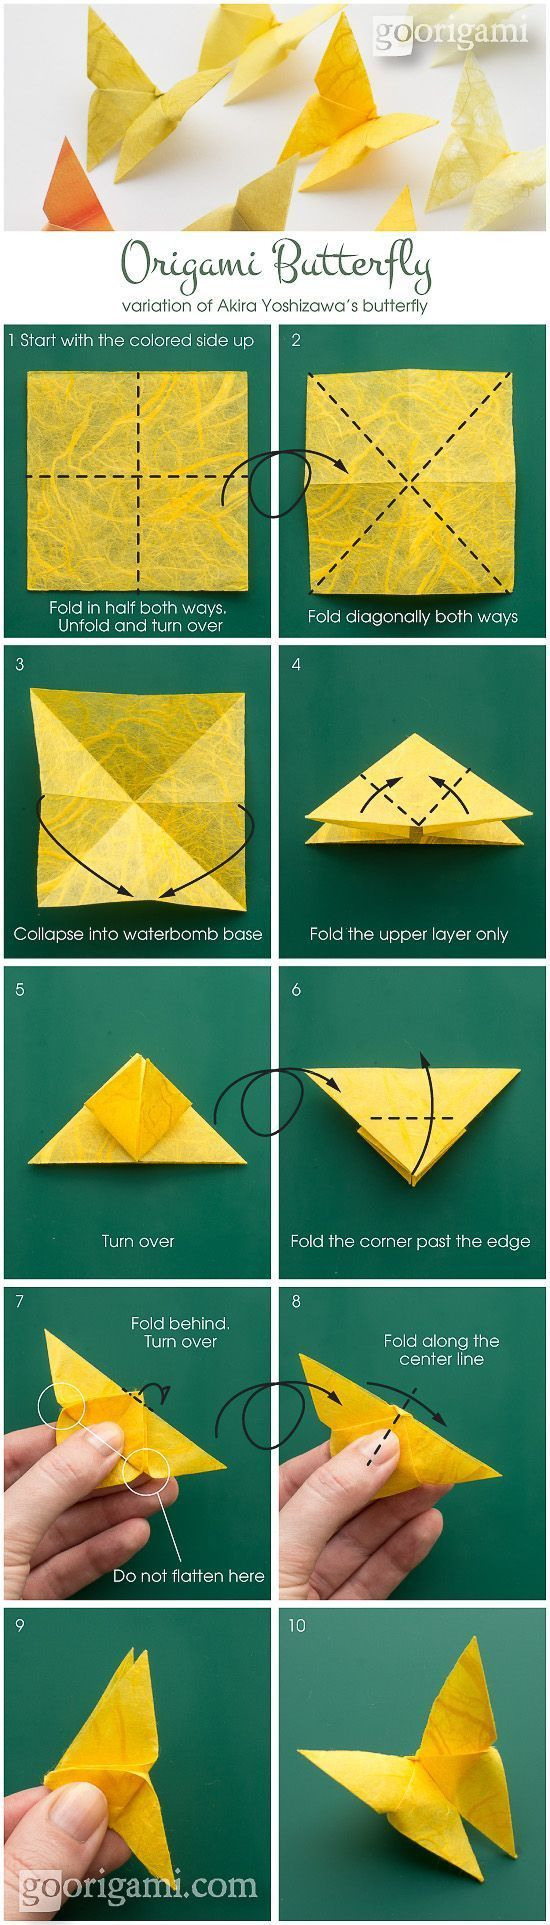 I used to love origami when I was a teenager. It was easy...